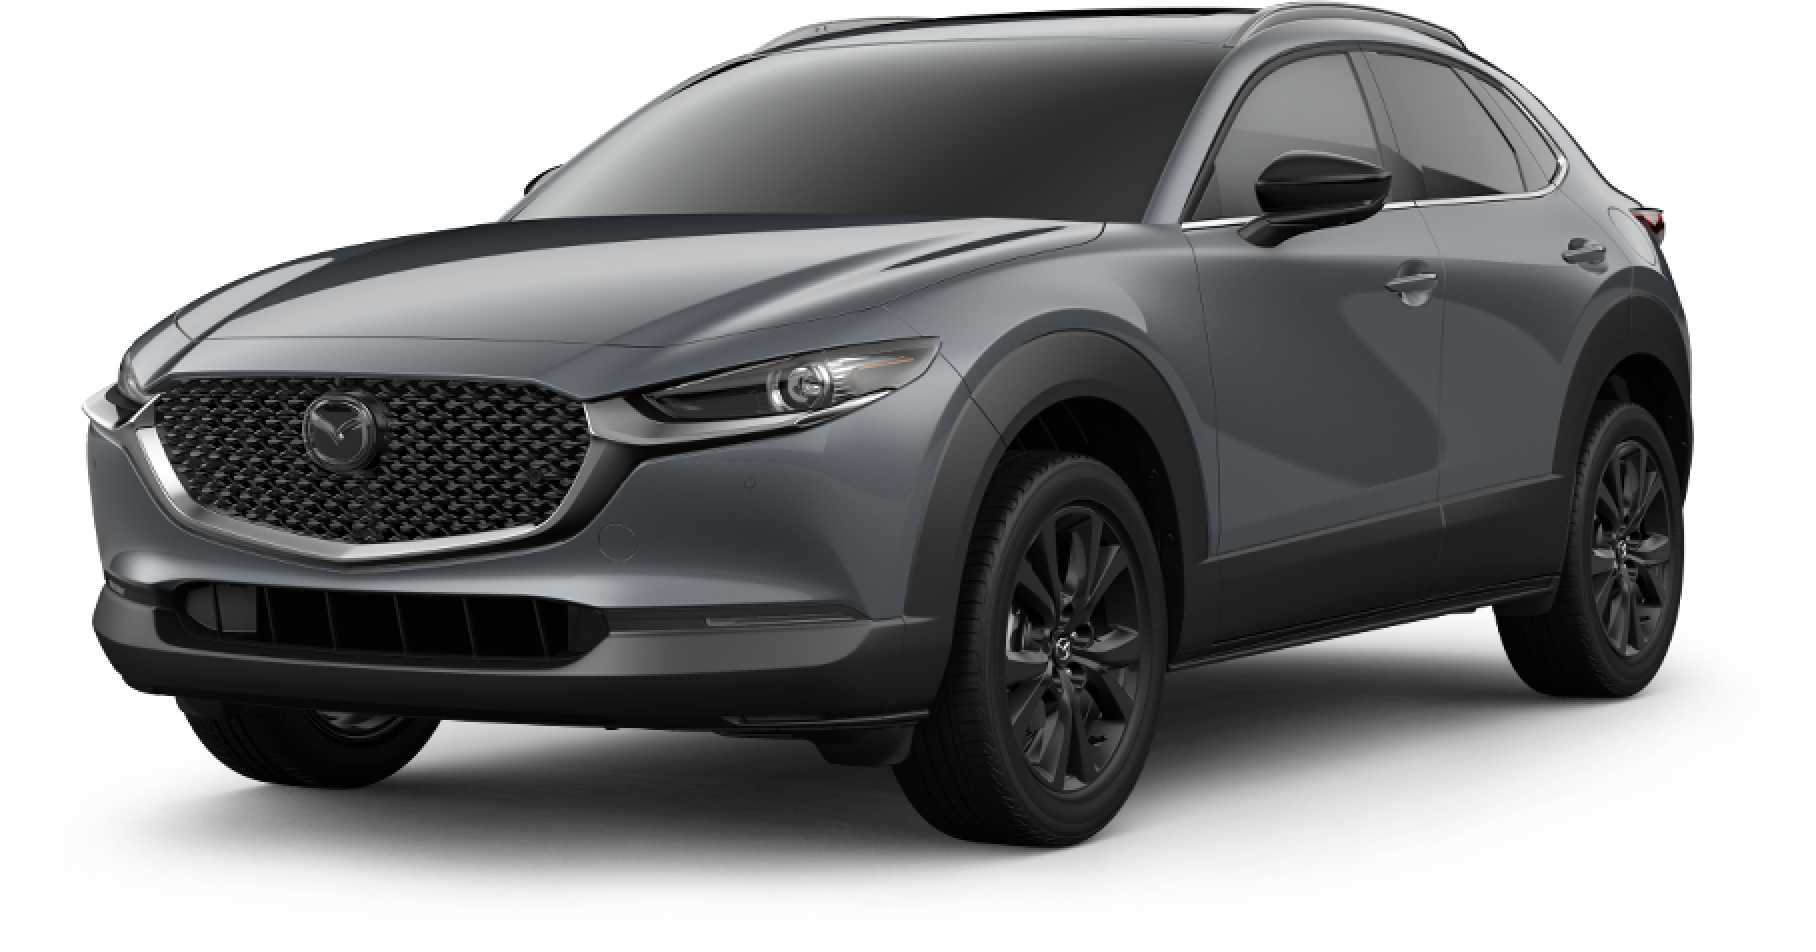 2021 Mazda CX-30, Polymetal Gray Metallic